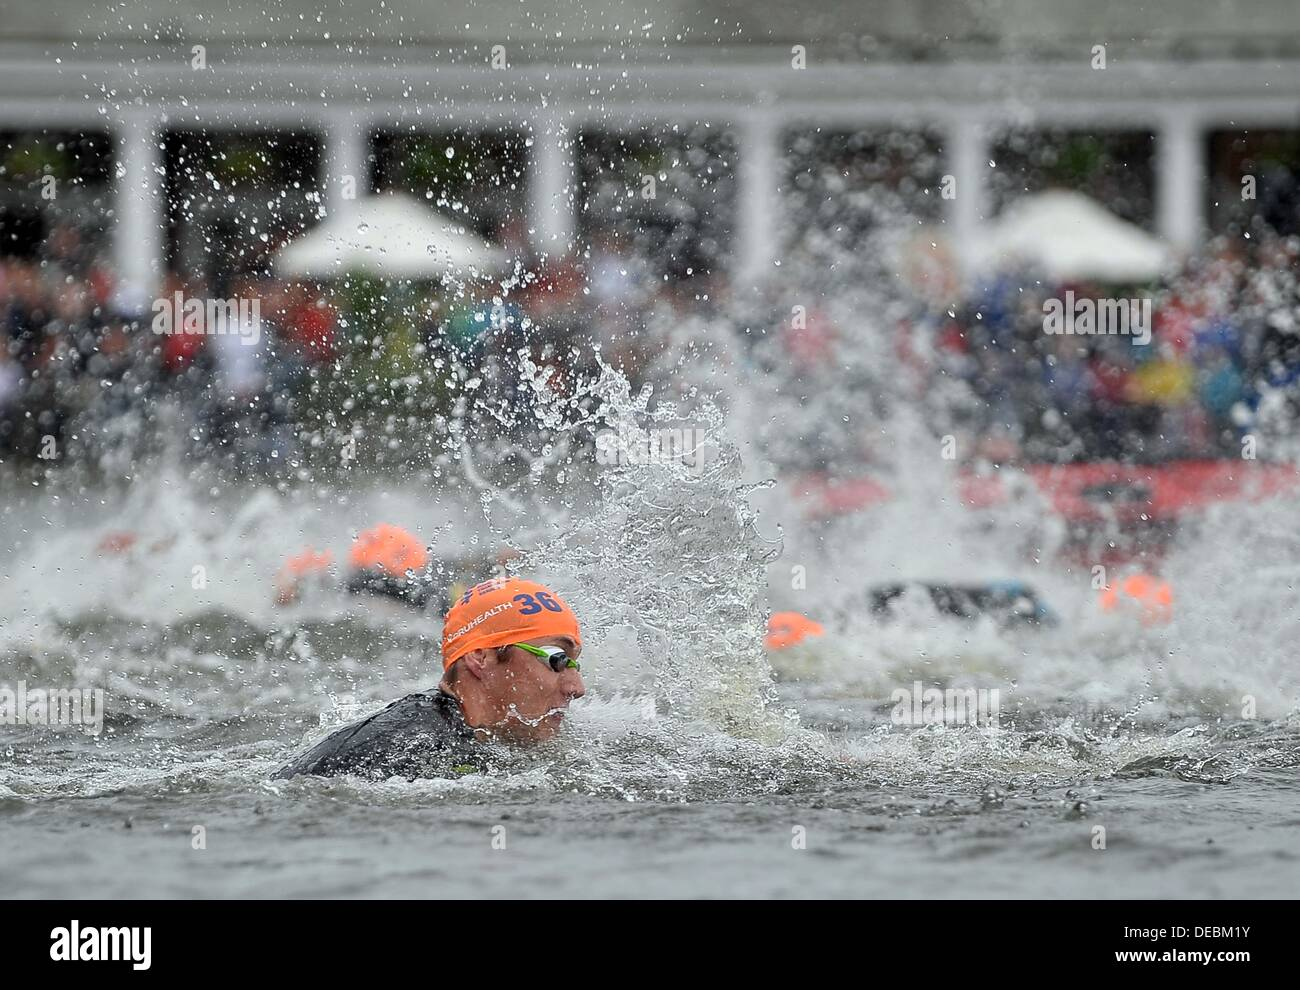 London, UK. 15th Sep, 2013. The competitors swim past the Serpentine cafe. Benjamin Shaw (ITU, 36). PruHealth World Triathlon Grand Final. Hyde Park. London. 15/09/2013. © Sport In Pictures/Alamy Live News - Stock Image